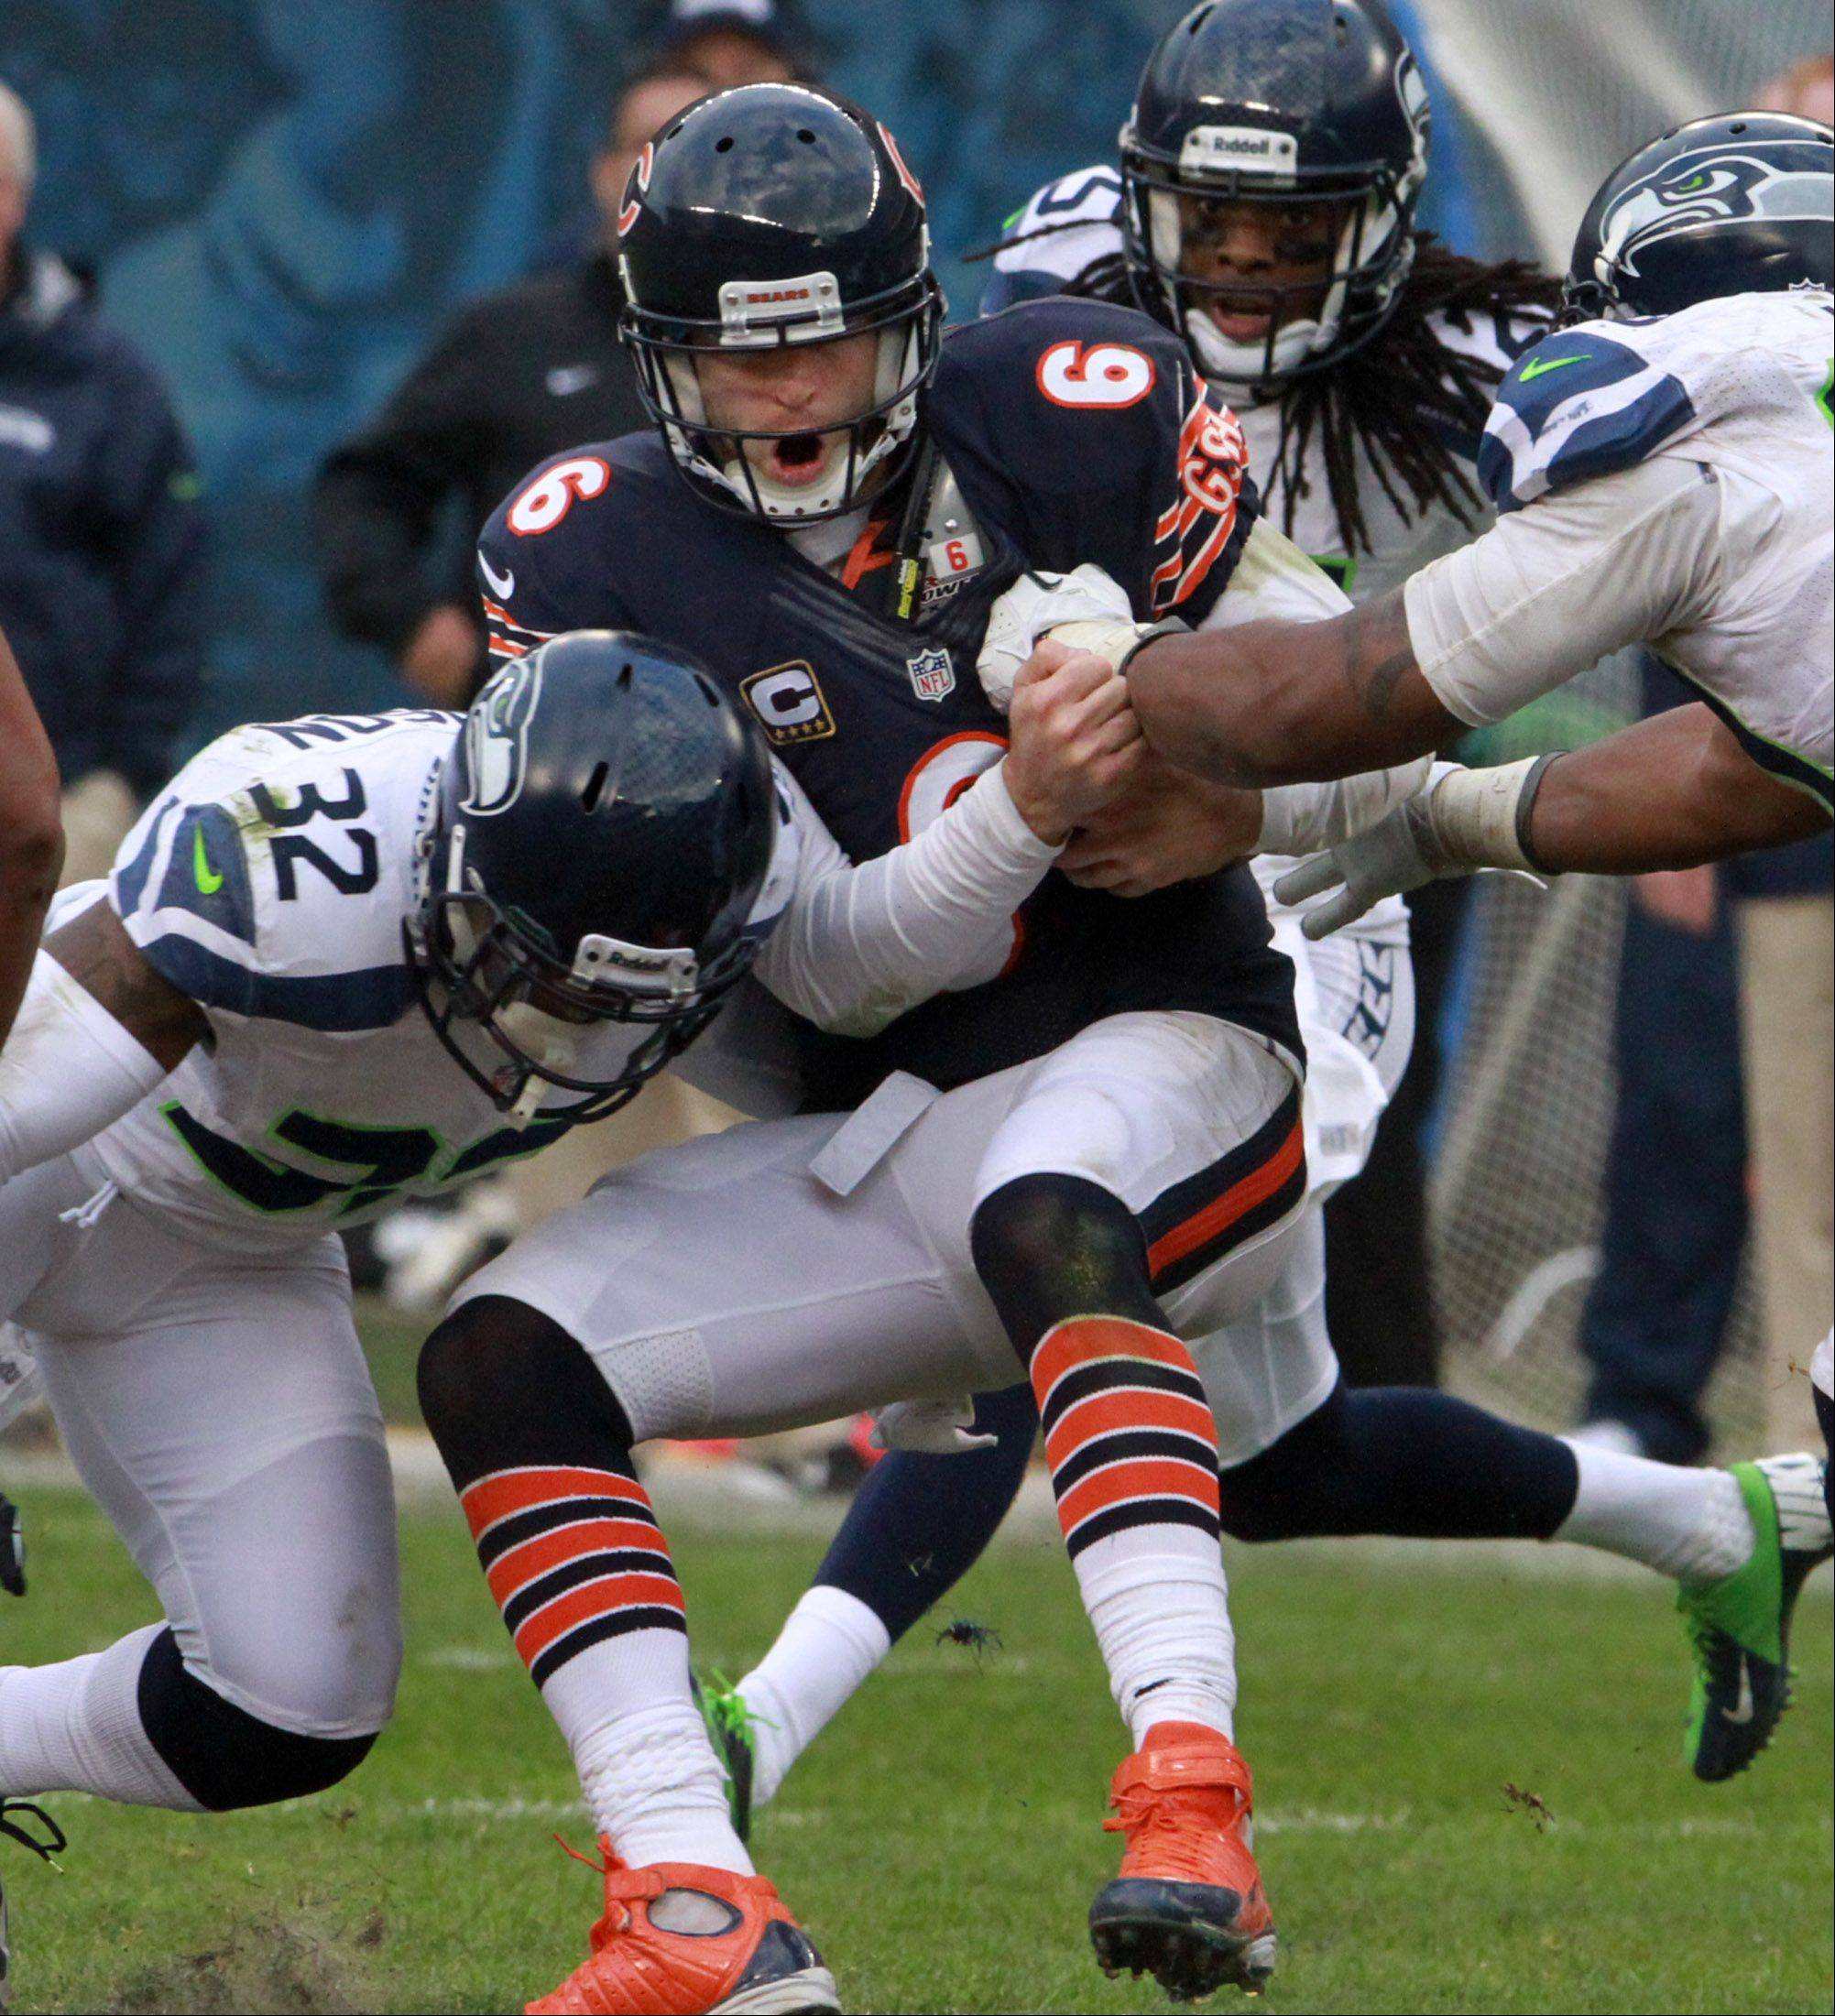 Bears quarterback Jay Cutler, here being tackled after taking off on a run, says his offensive line is �playing better.�